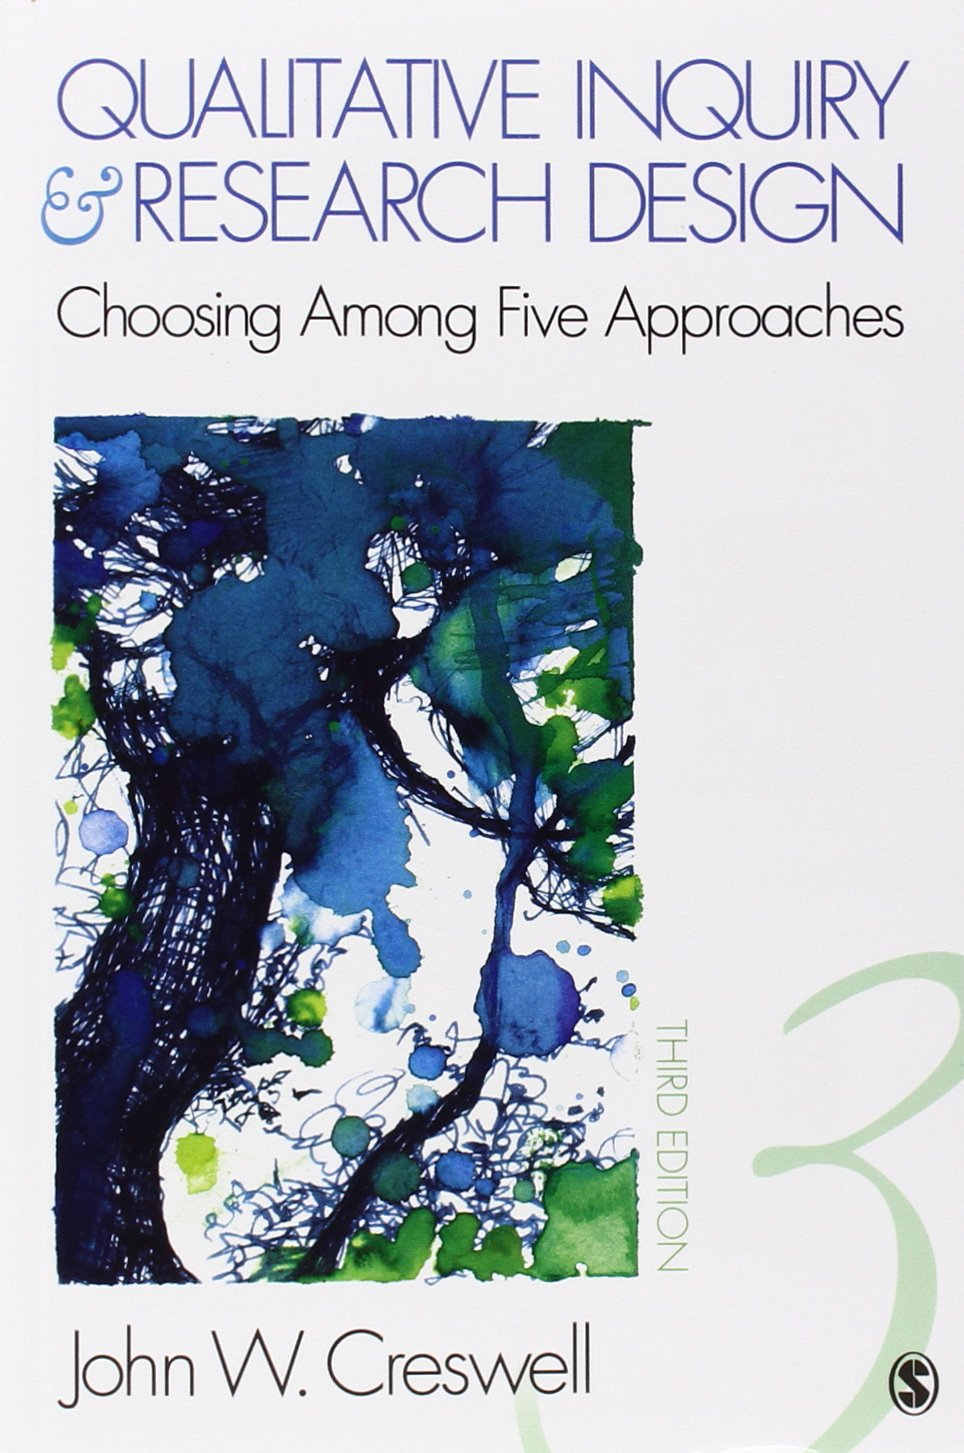 Qualitative poster design - Qualitative Inquiry And Research Design Choosing Among Five Approaches Amazon Co Uk John W Creswell 8601404516801 Books